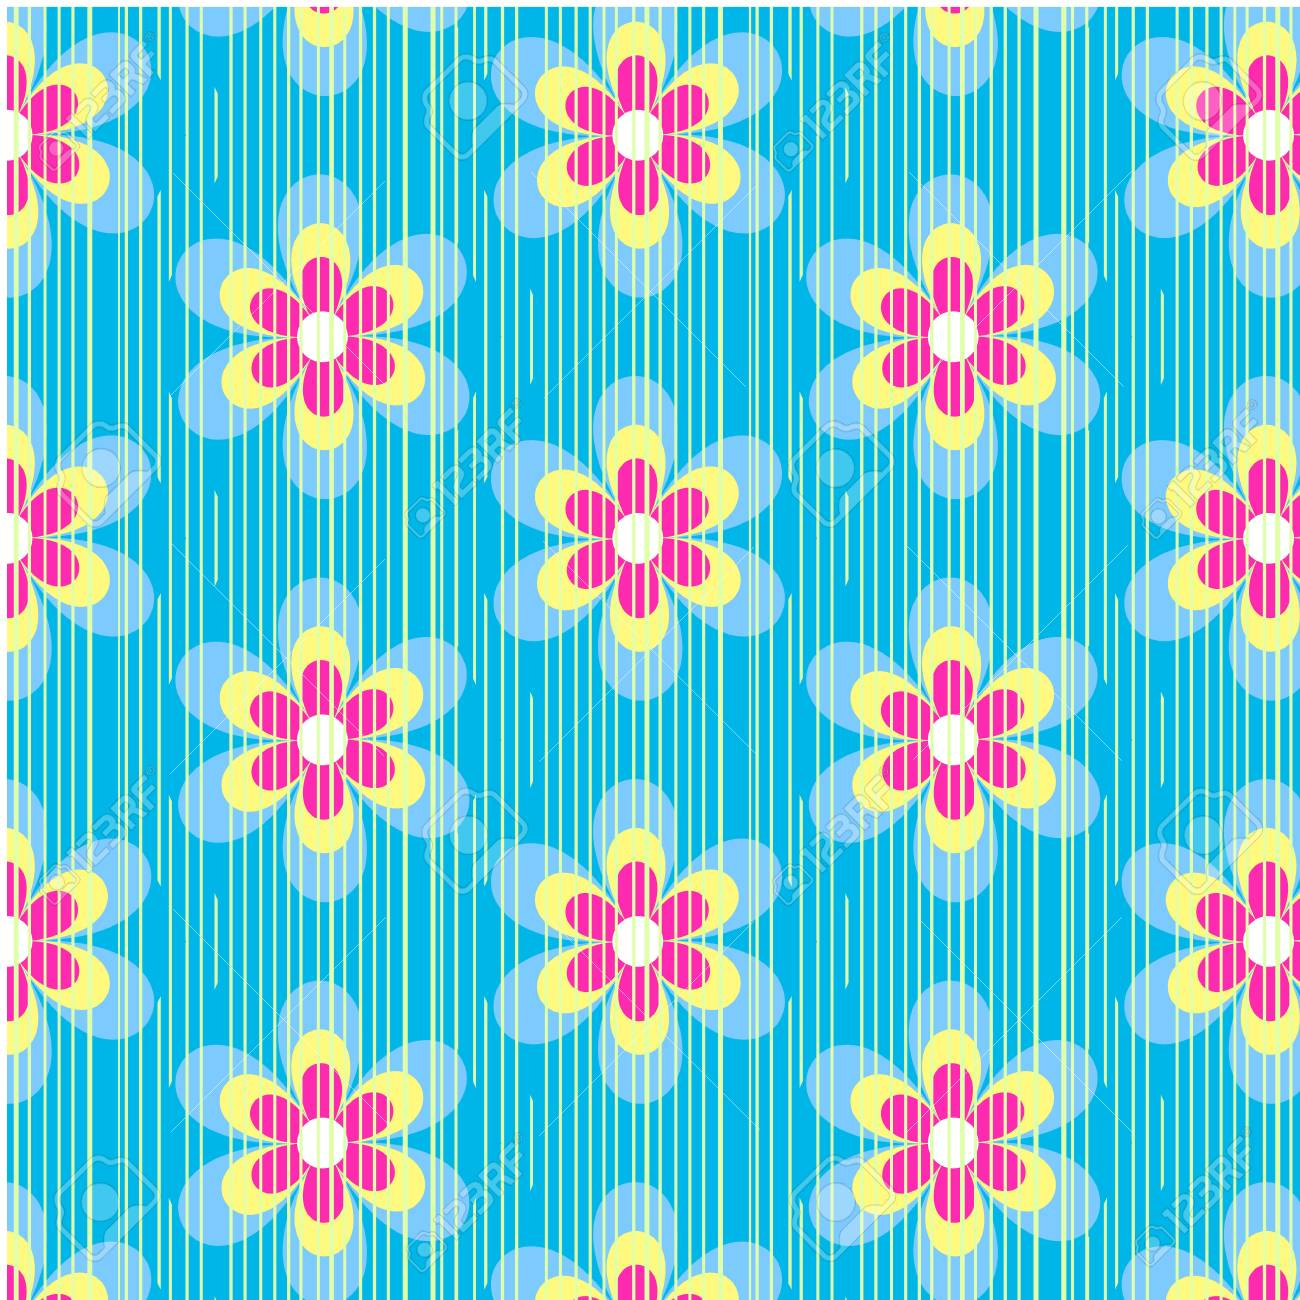 Vintage Floral Wallpaper Rose Repeat Seamless Pattern In Blue